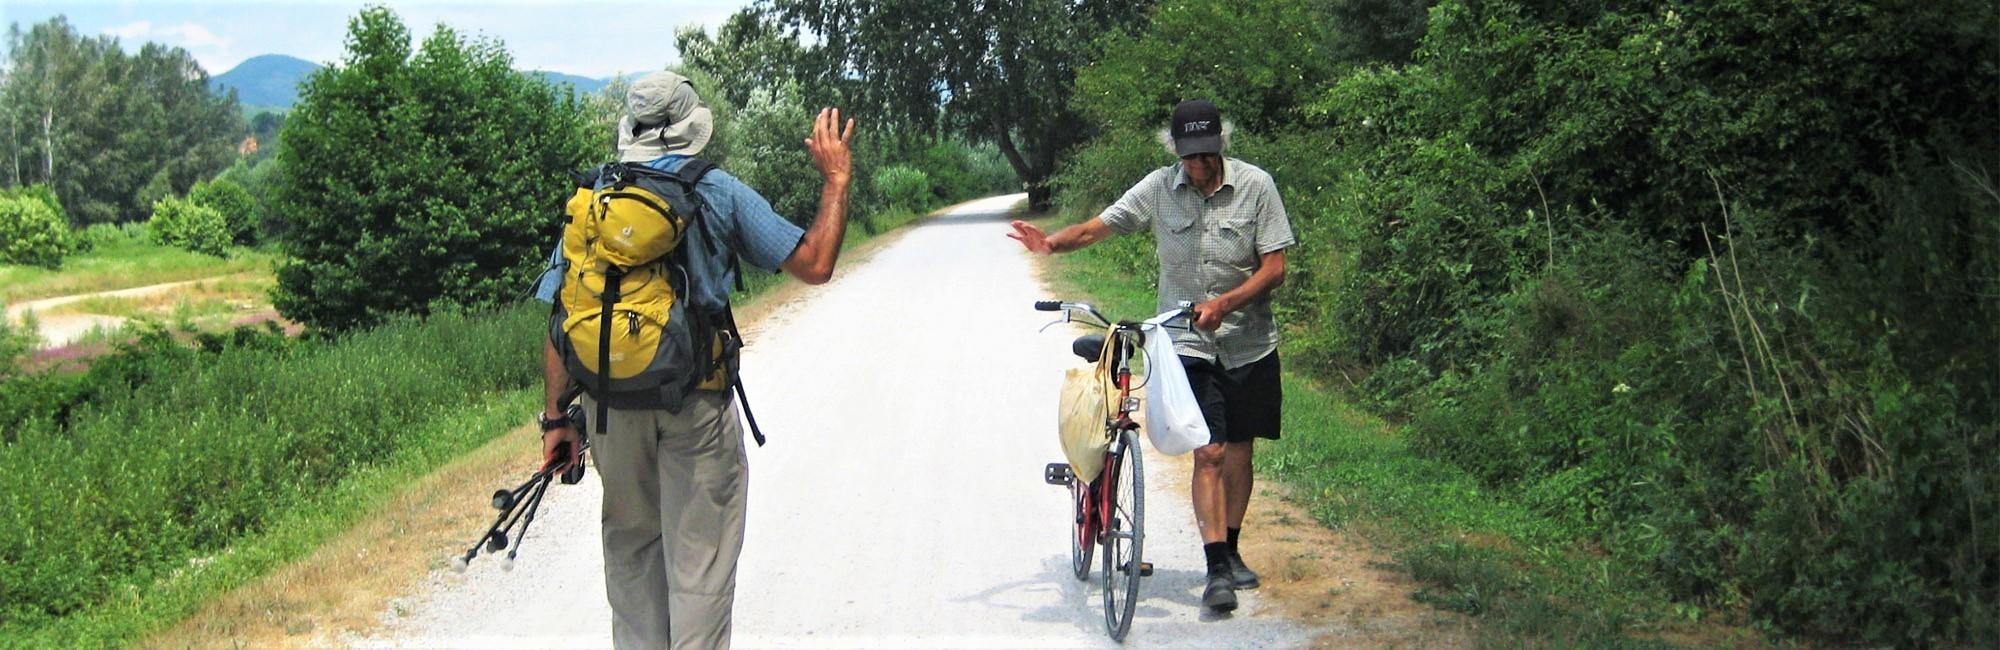 pilgrims waving at the Via Francigena